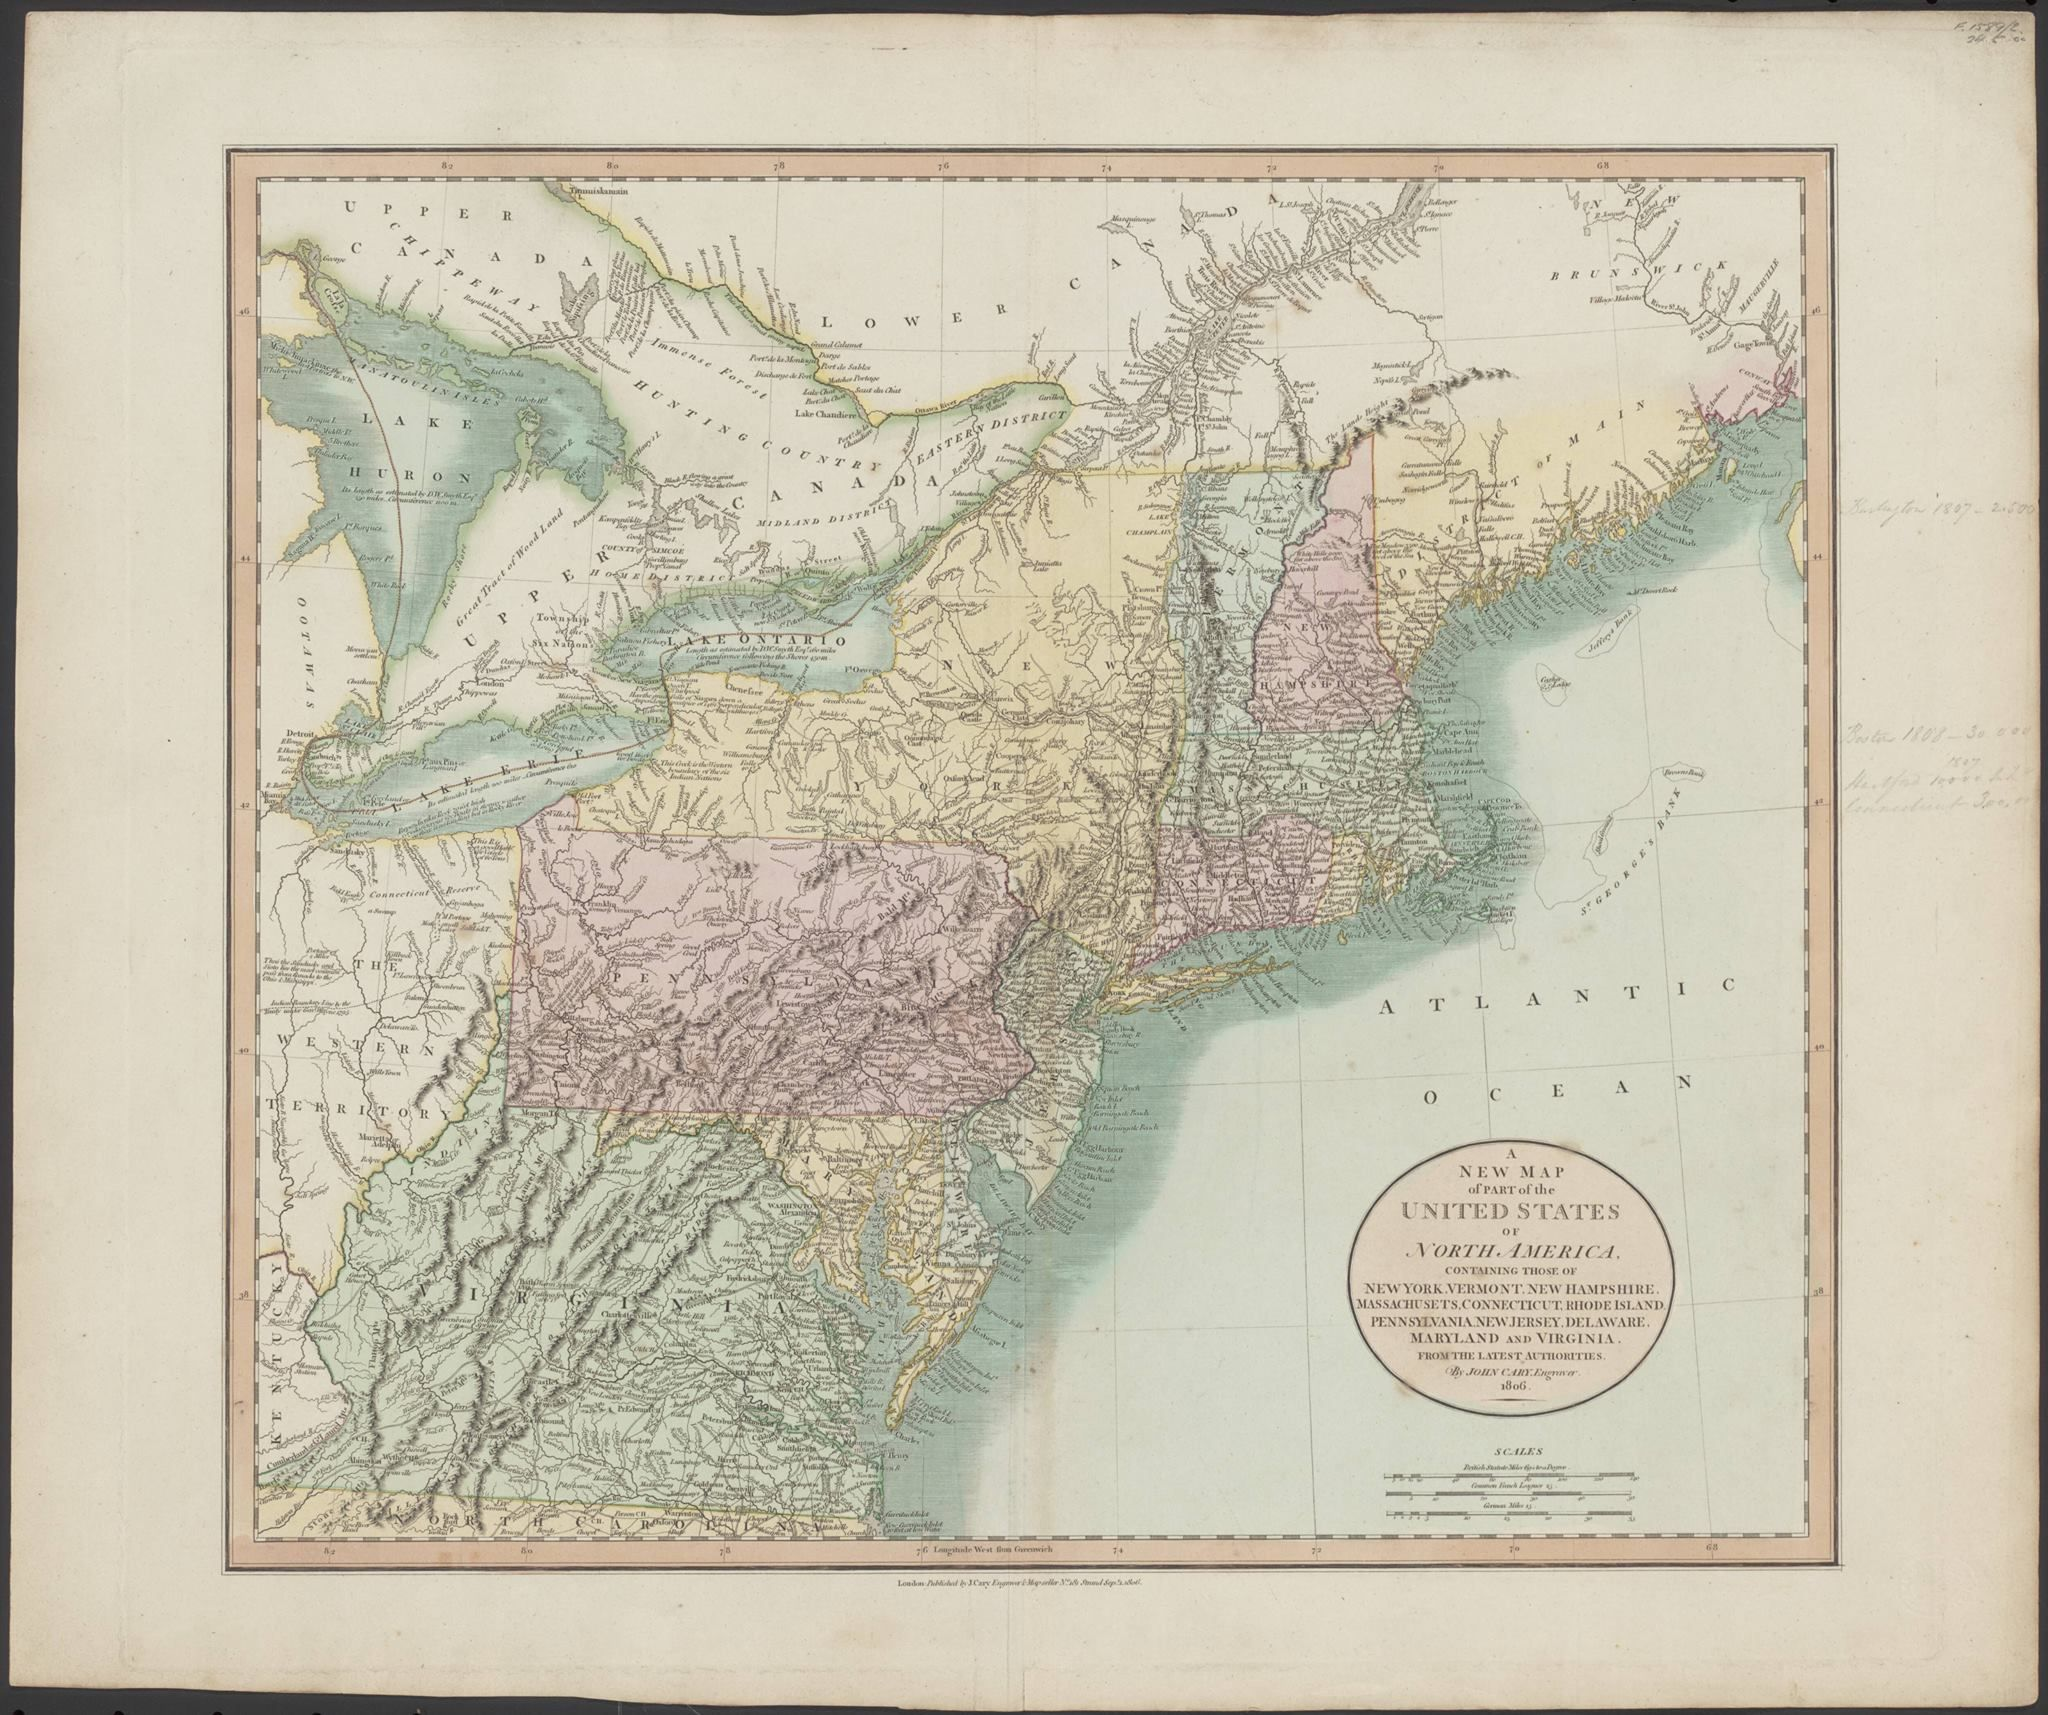 This 1806 map of the northern United States shows how Virginia and